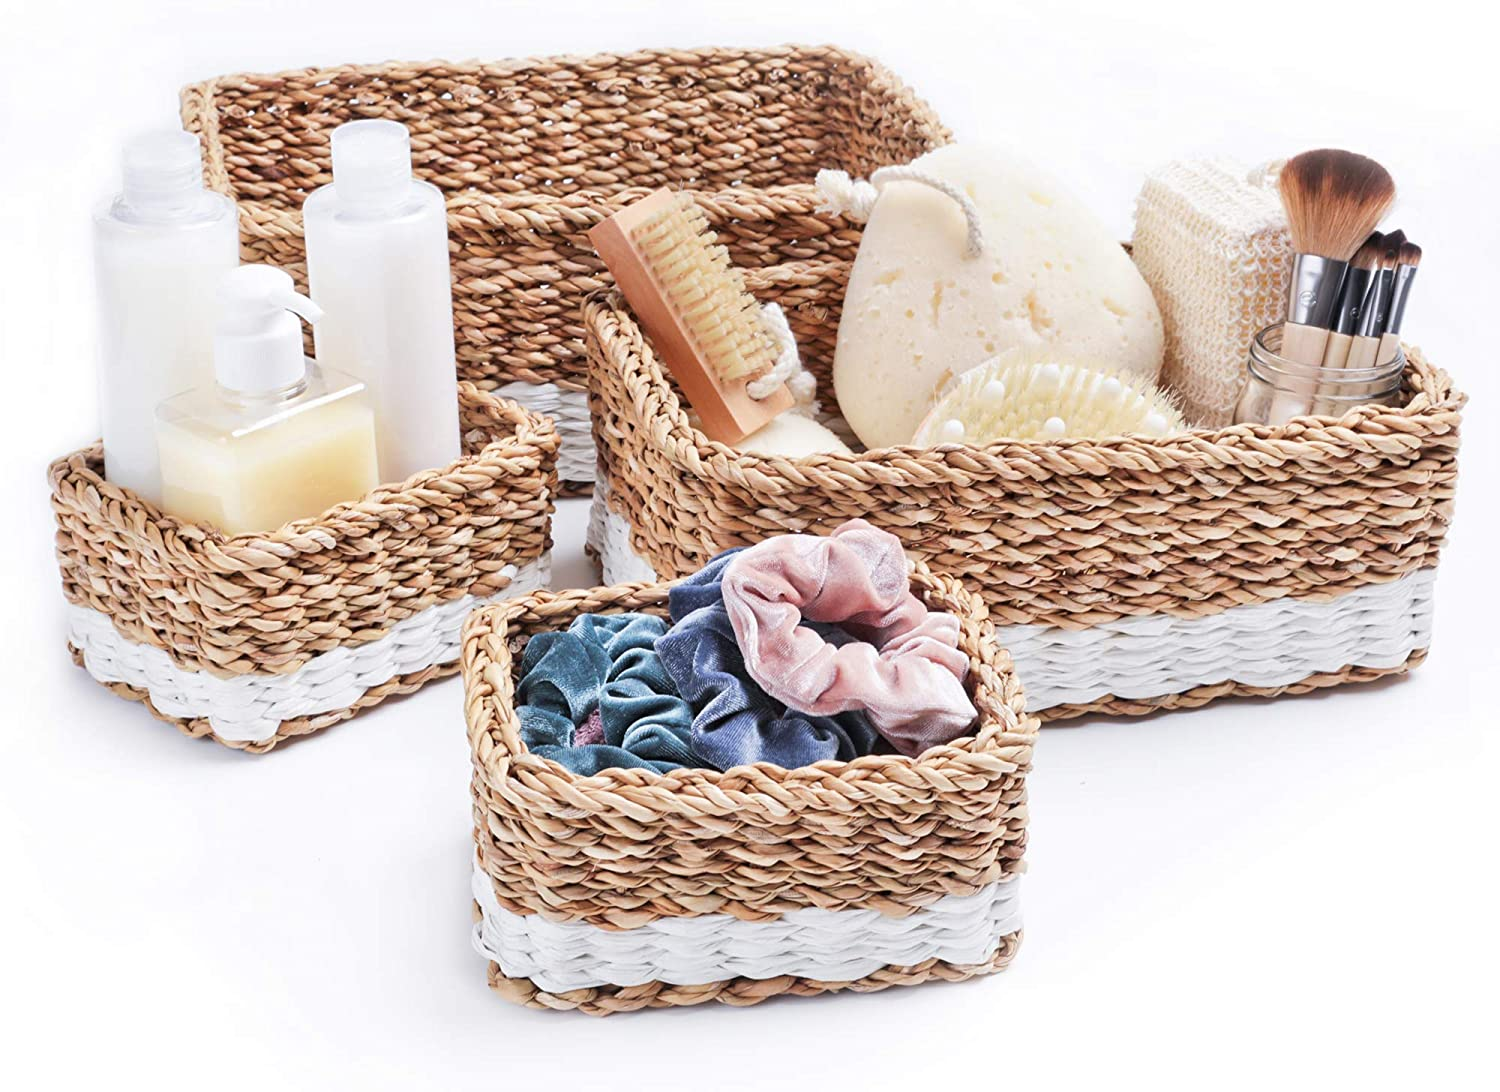 Woven Rectangle Seagrass Basket Set for Home - 4 Decorative Storage Baskets for Bathroom Organizing and Storage - Eco-Friendly Nesting Baskets with Cotton Dust Bag for Coastal and Beach Decor